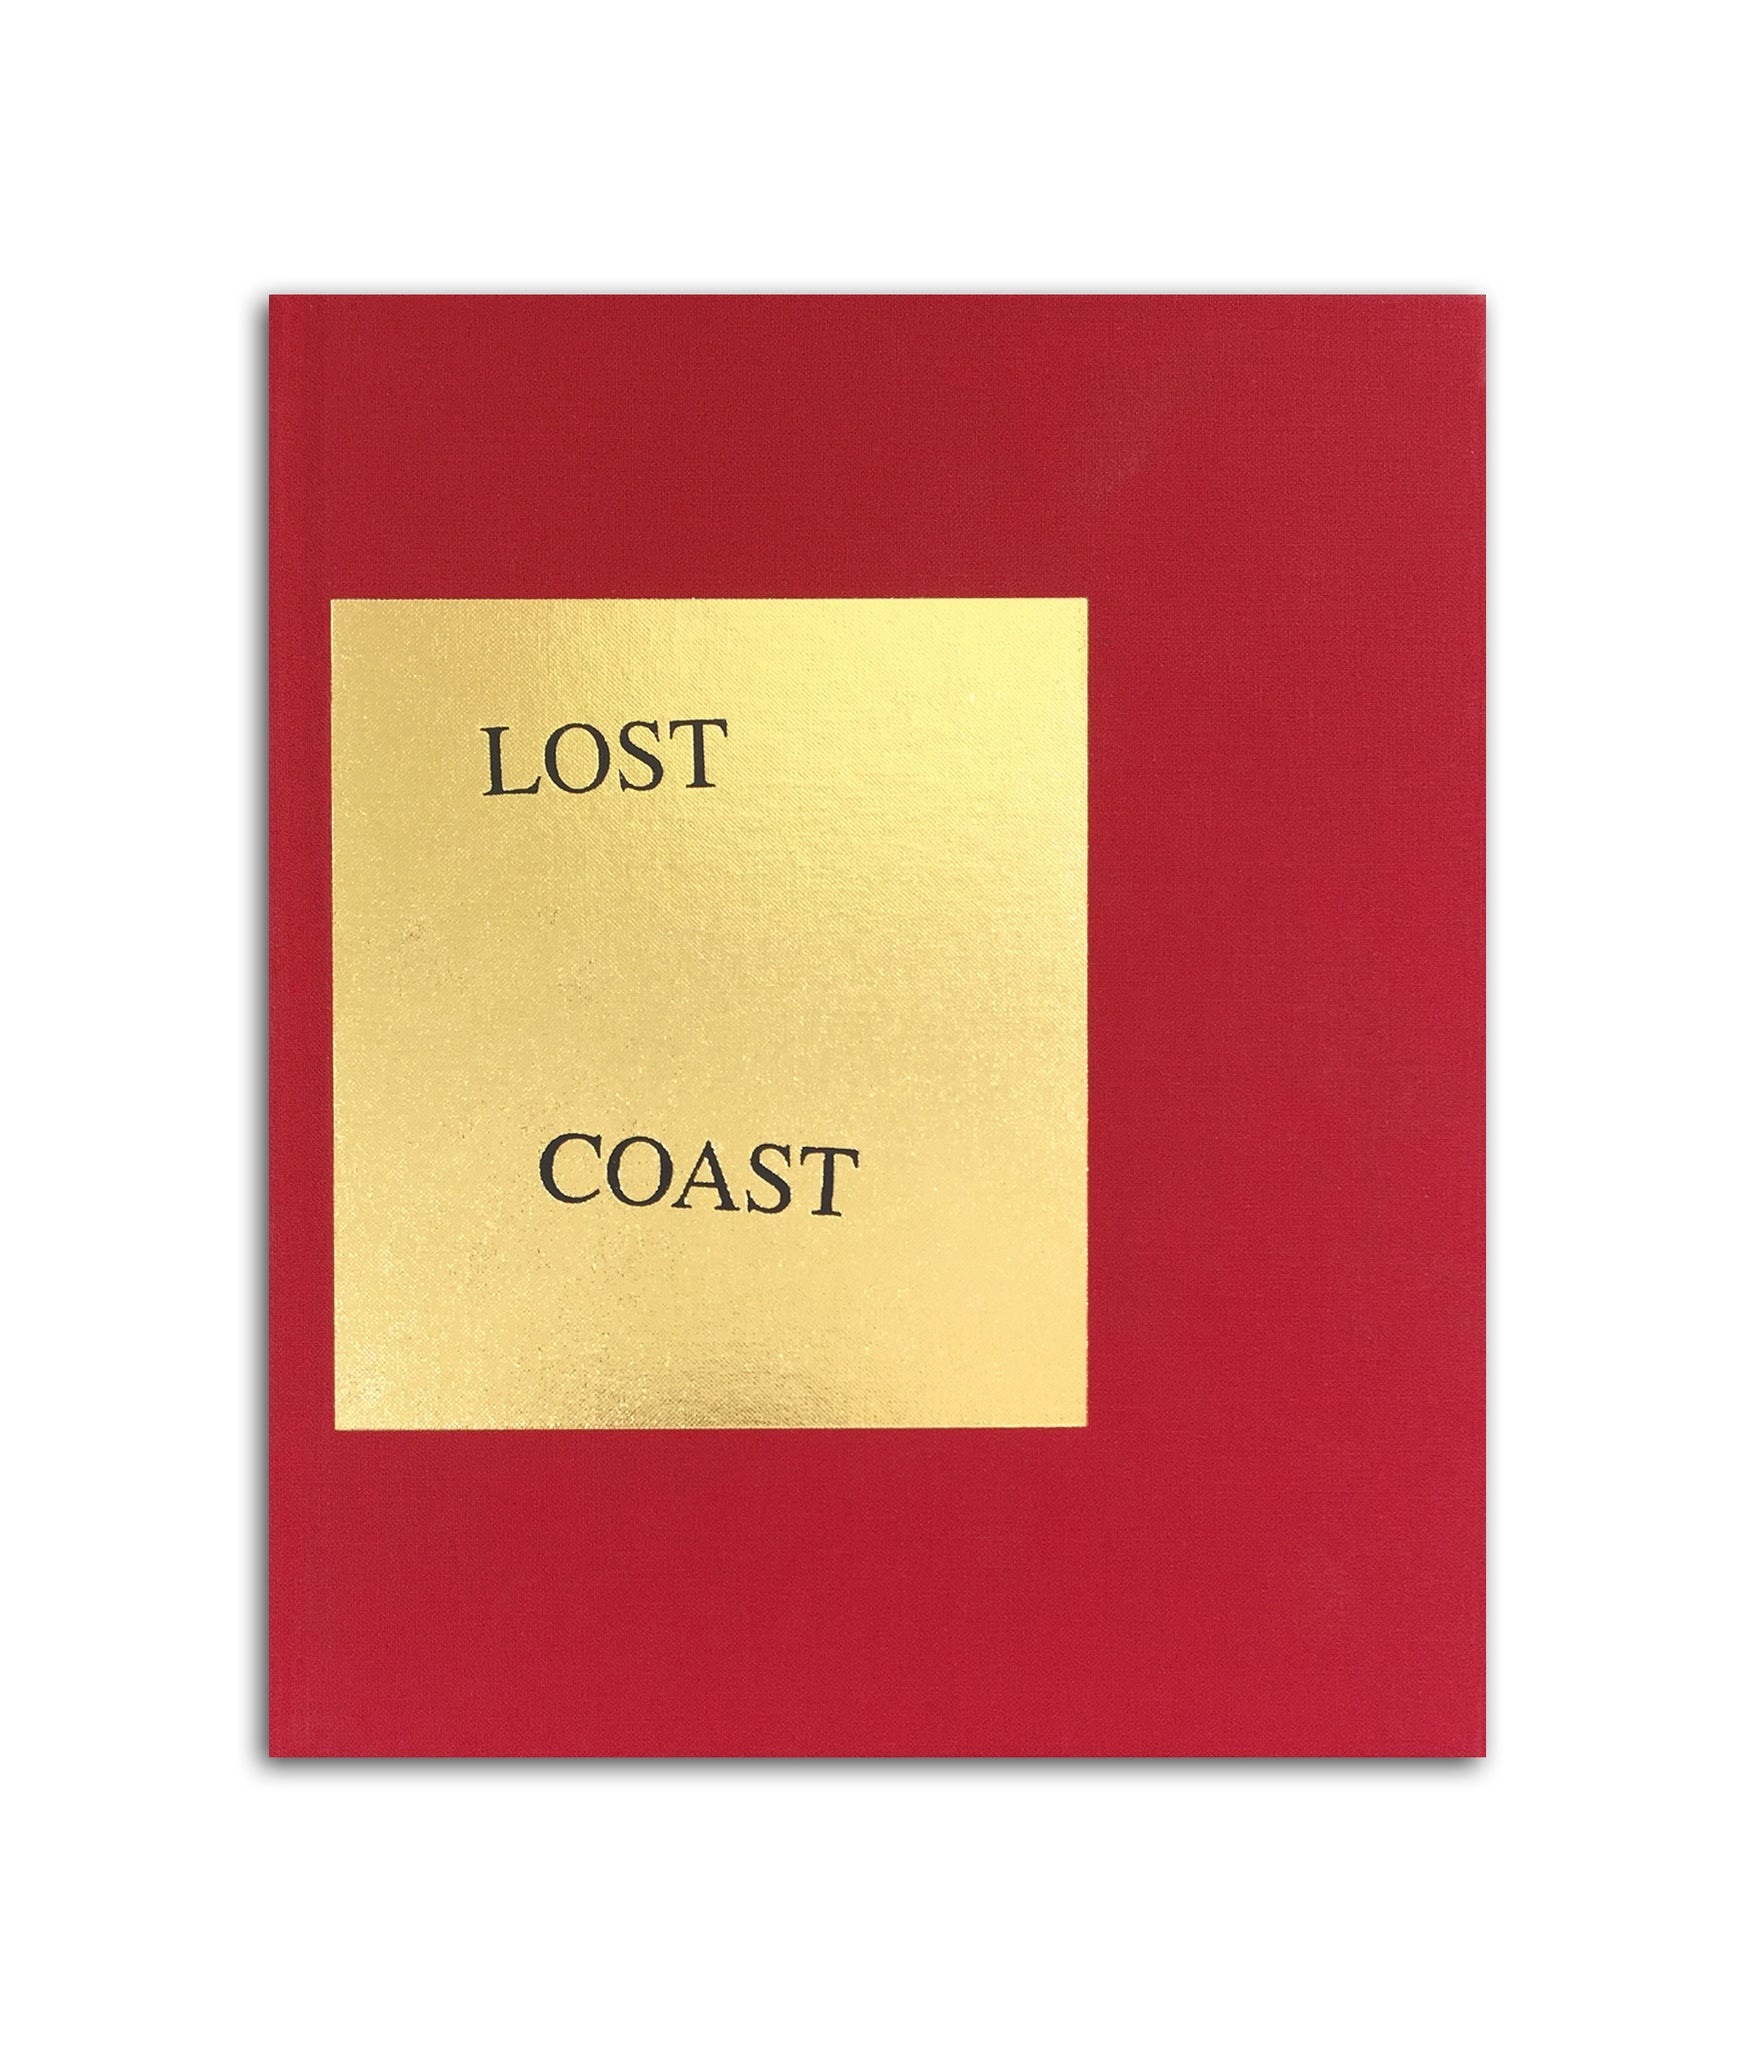 Lost Coast - First Edition - SOLD OUT